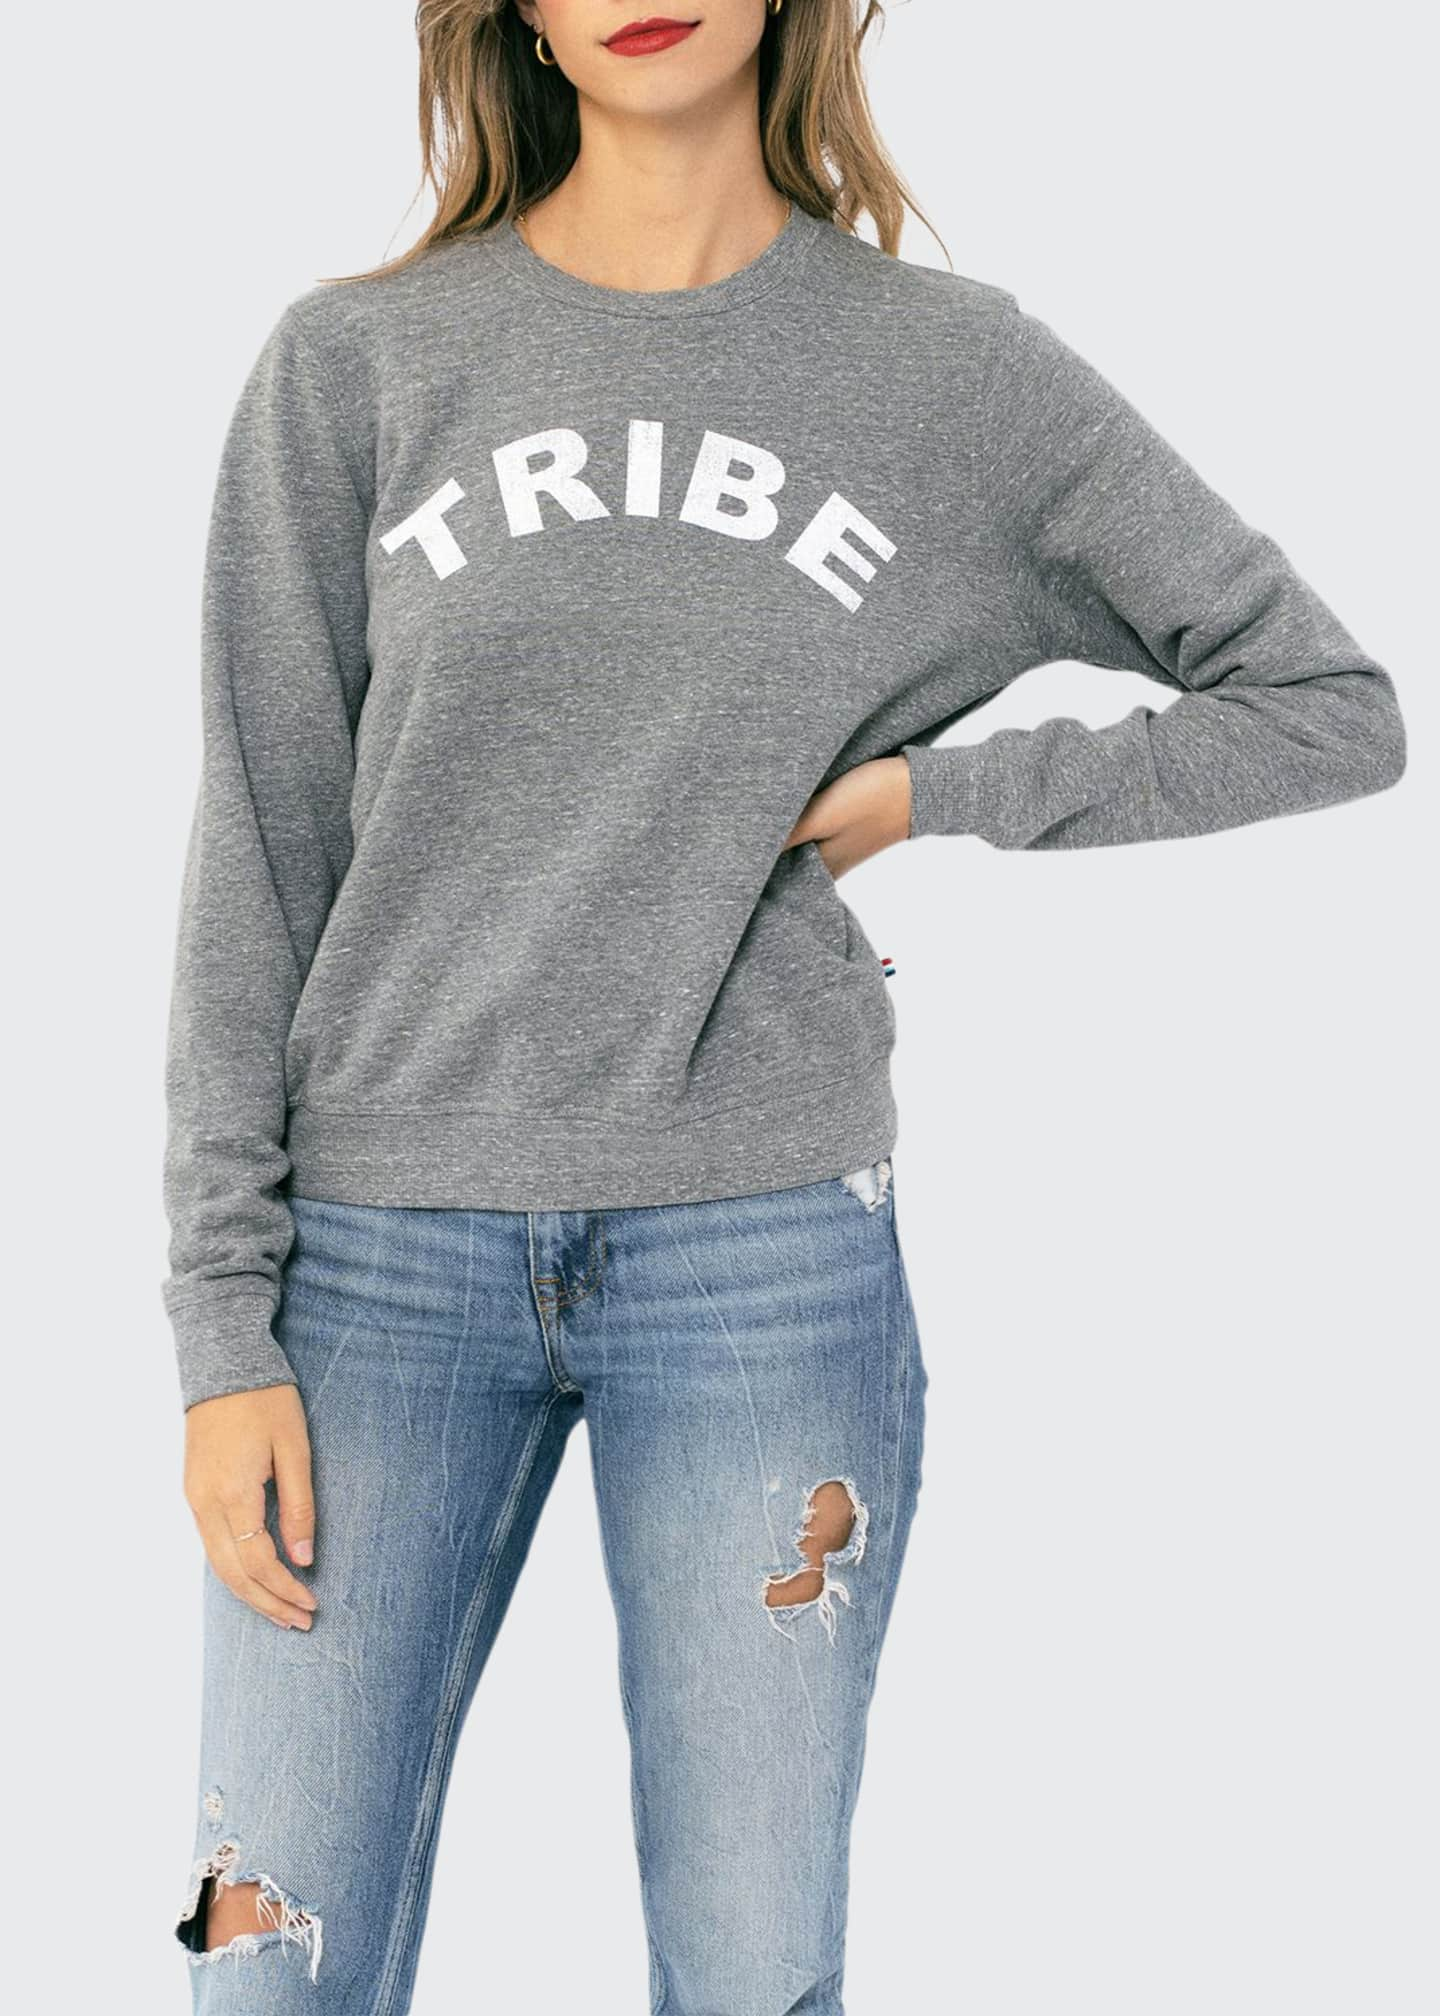 Sol Angeles Tribe Pullover Sweatshirt